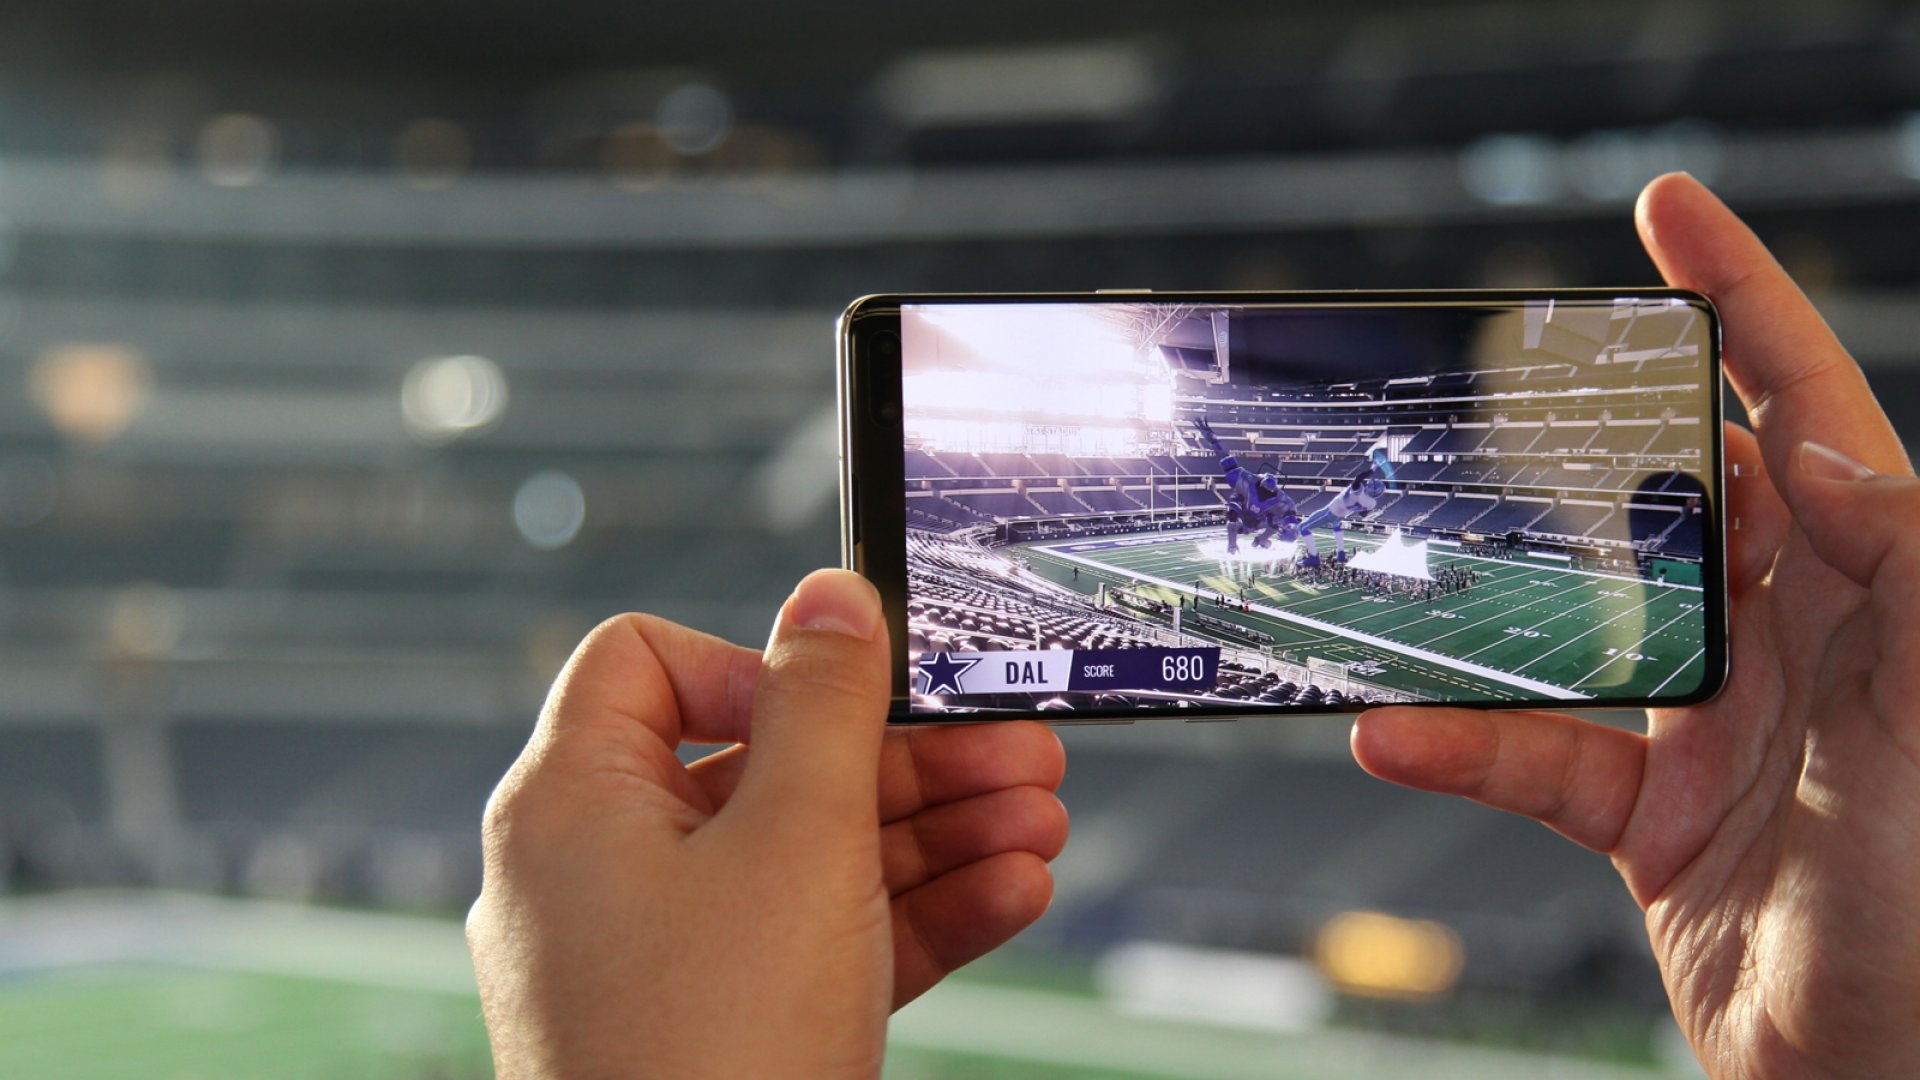 Augmented Reality can enhance the live stadium experience with stats and commentary.